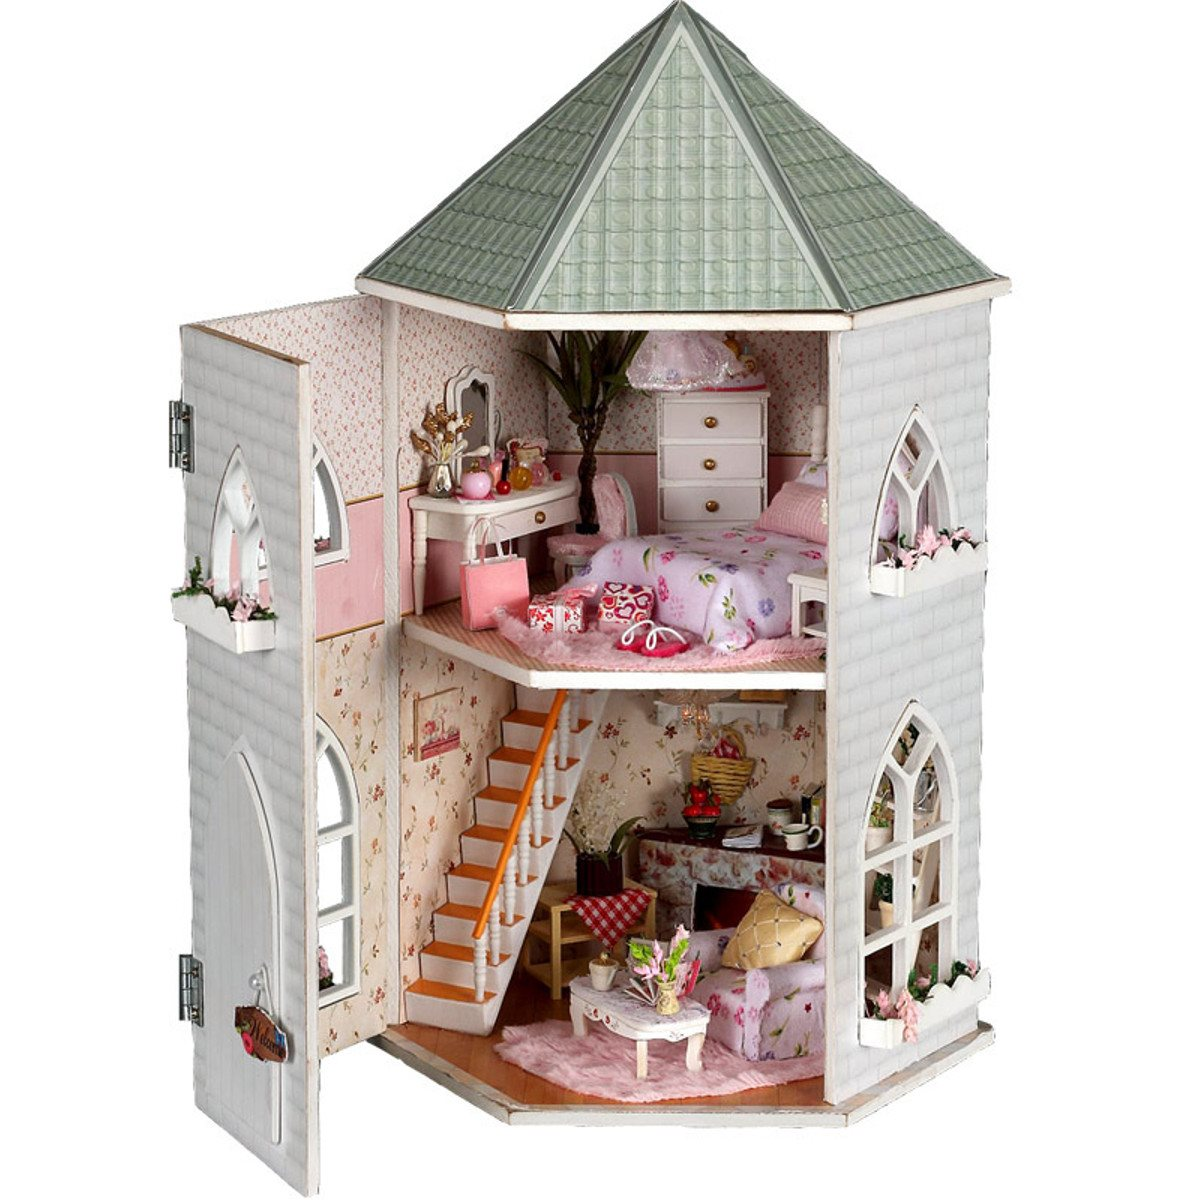 Love Castle Diy Wooden Dollhouse Miniature With Light And